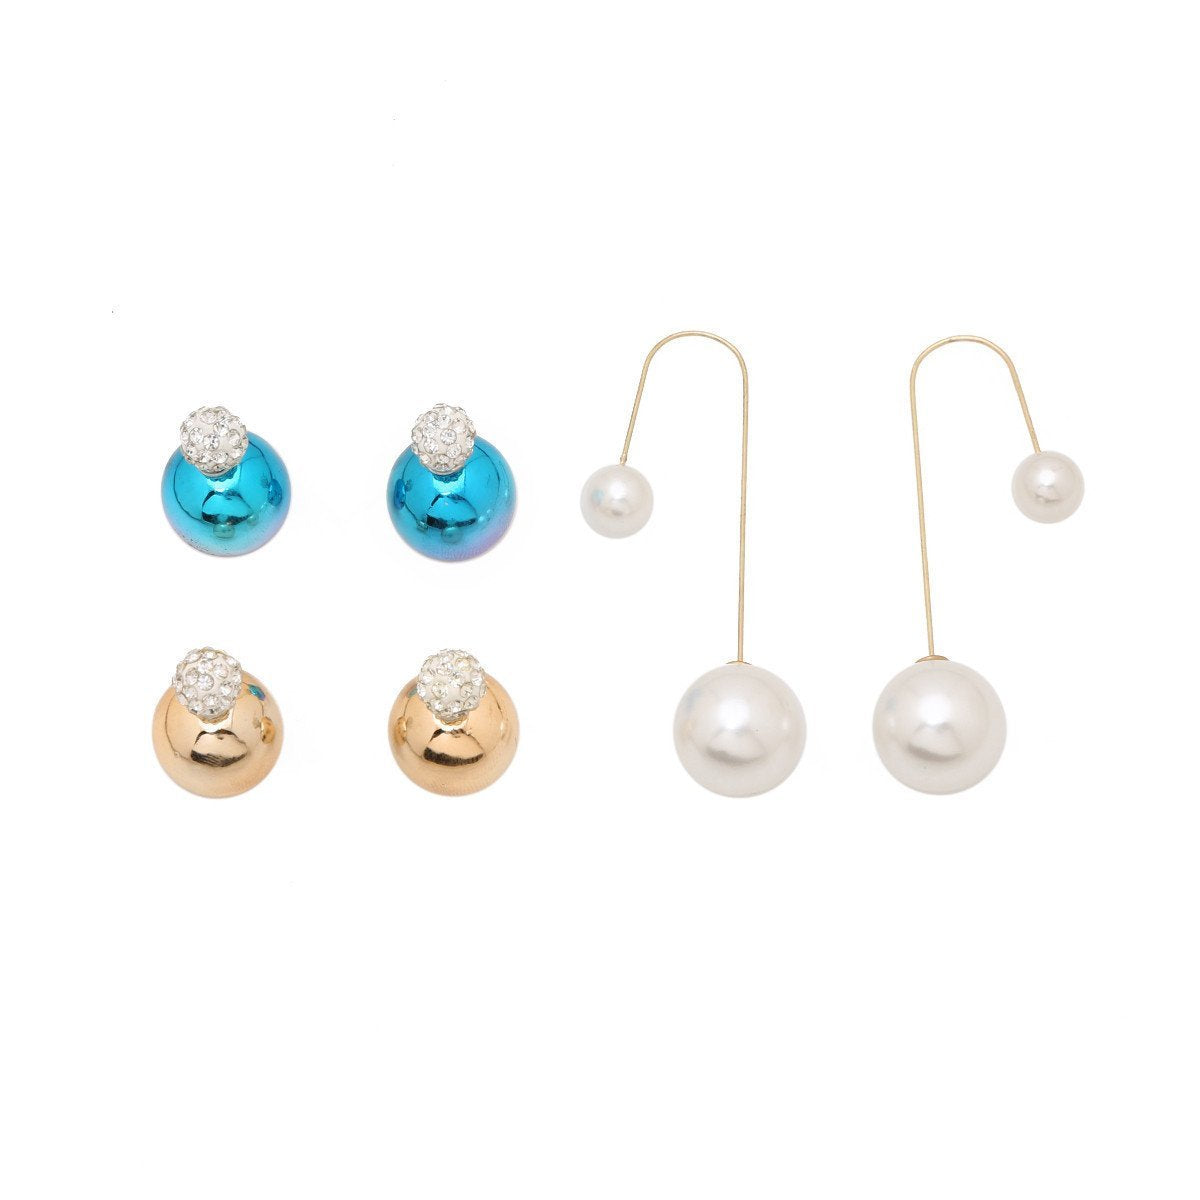 Double Trouble Earring Set